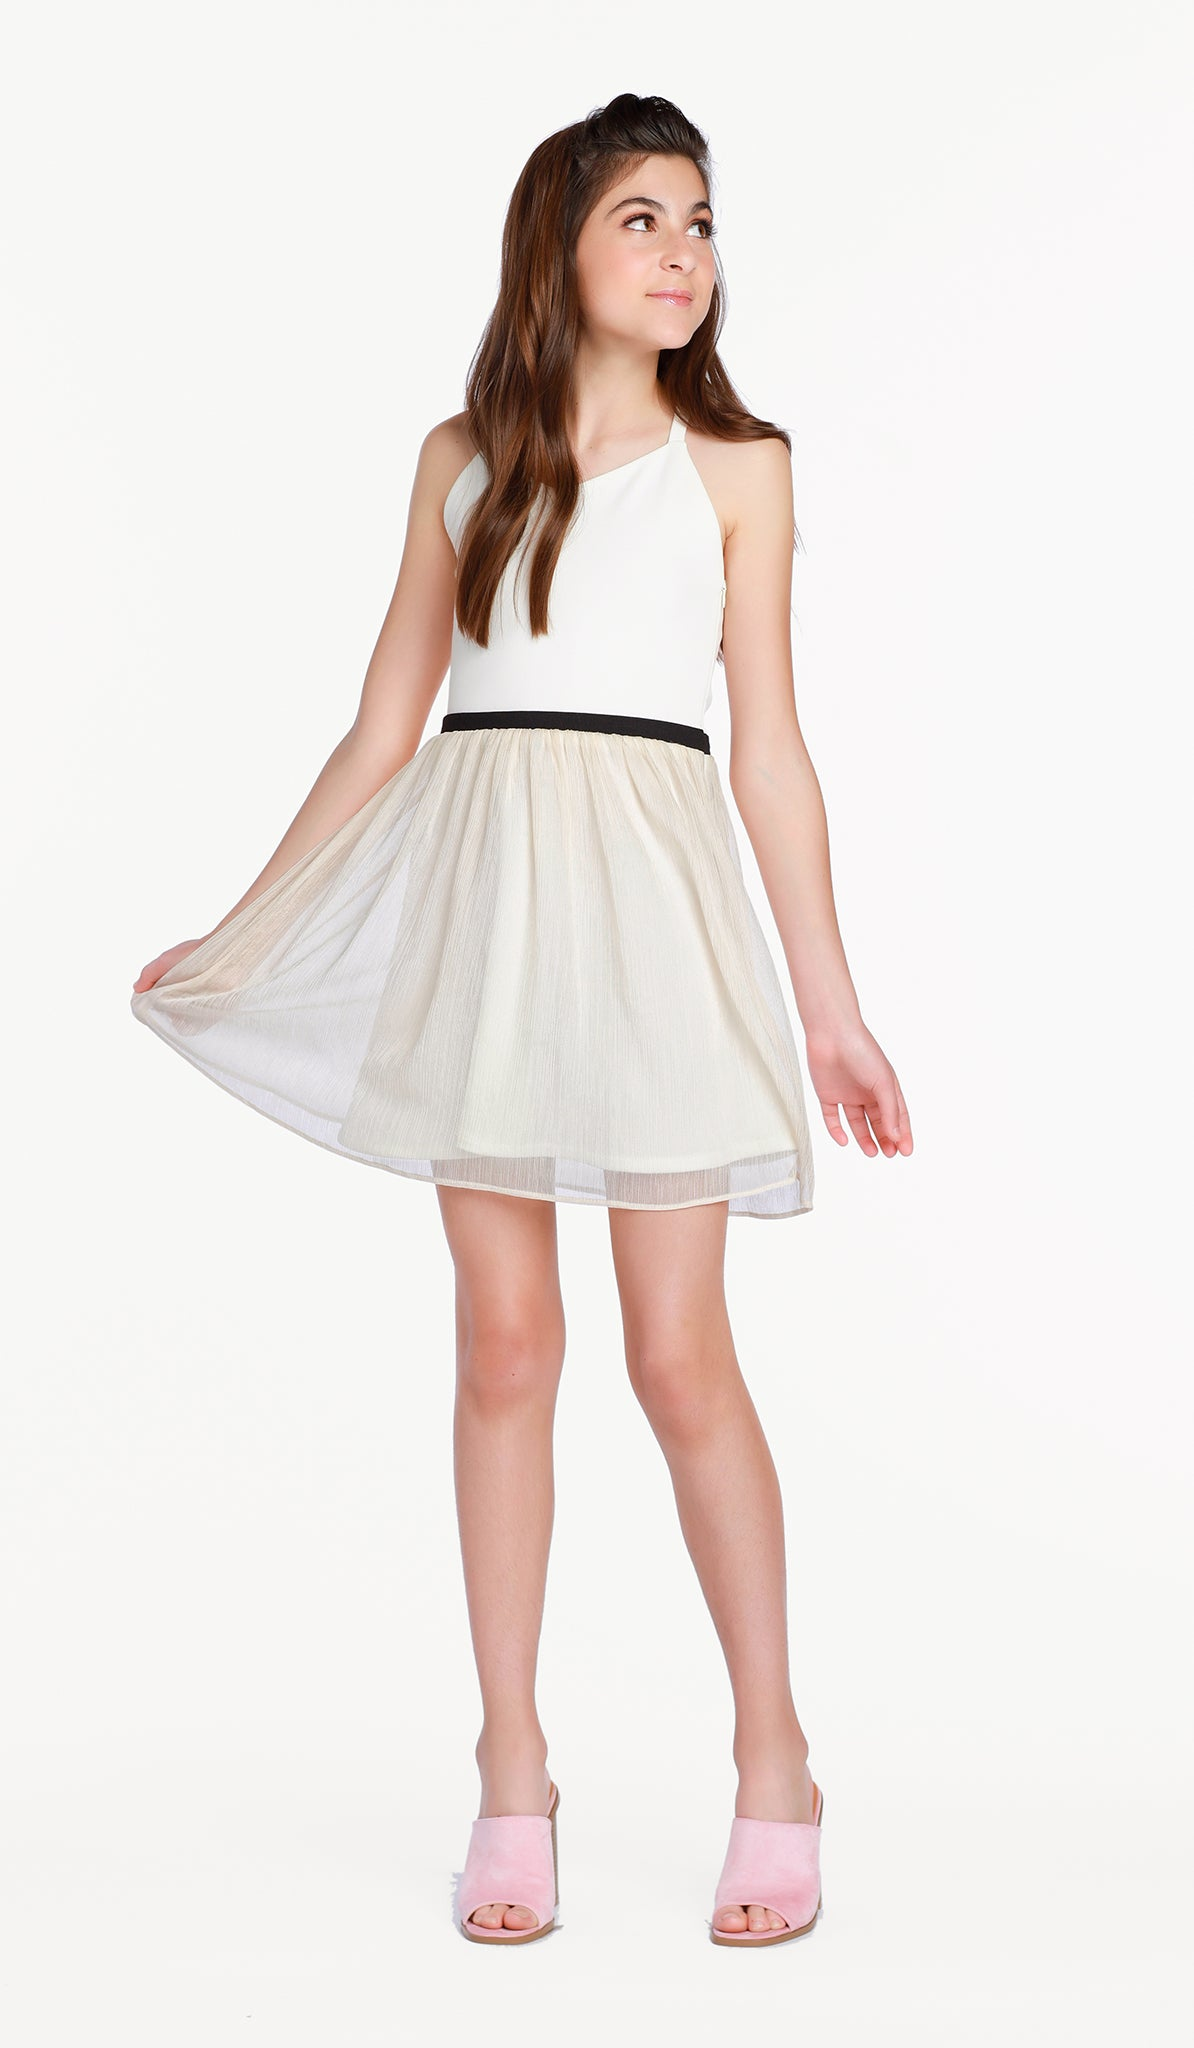 The Sally Miller Emmie Dress - Ivory ballet neck super ponti bodice with blush textured chiffon gathered skirt and side invisible zipper